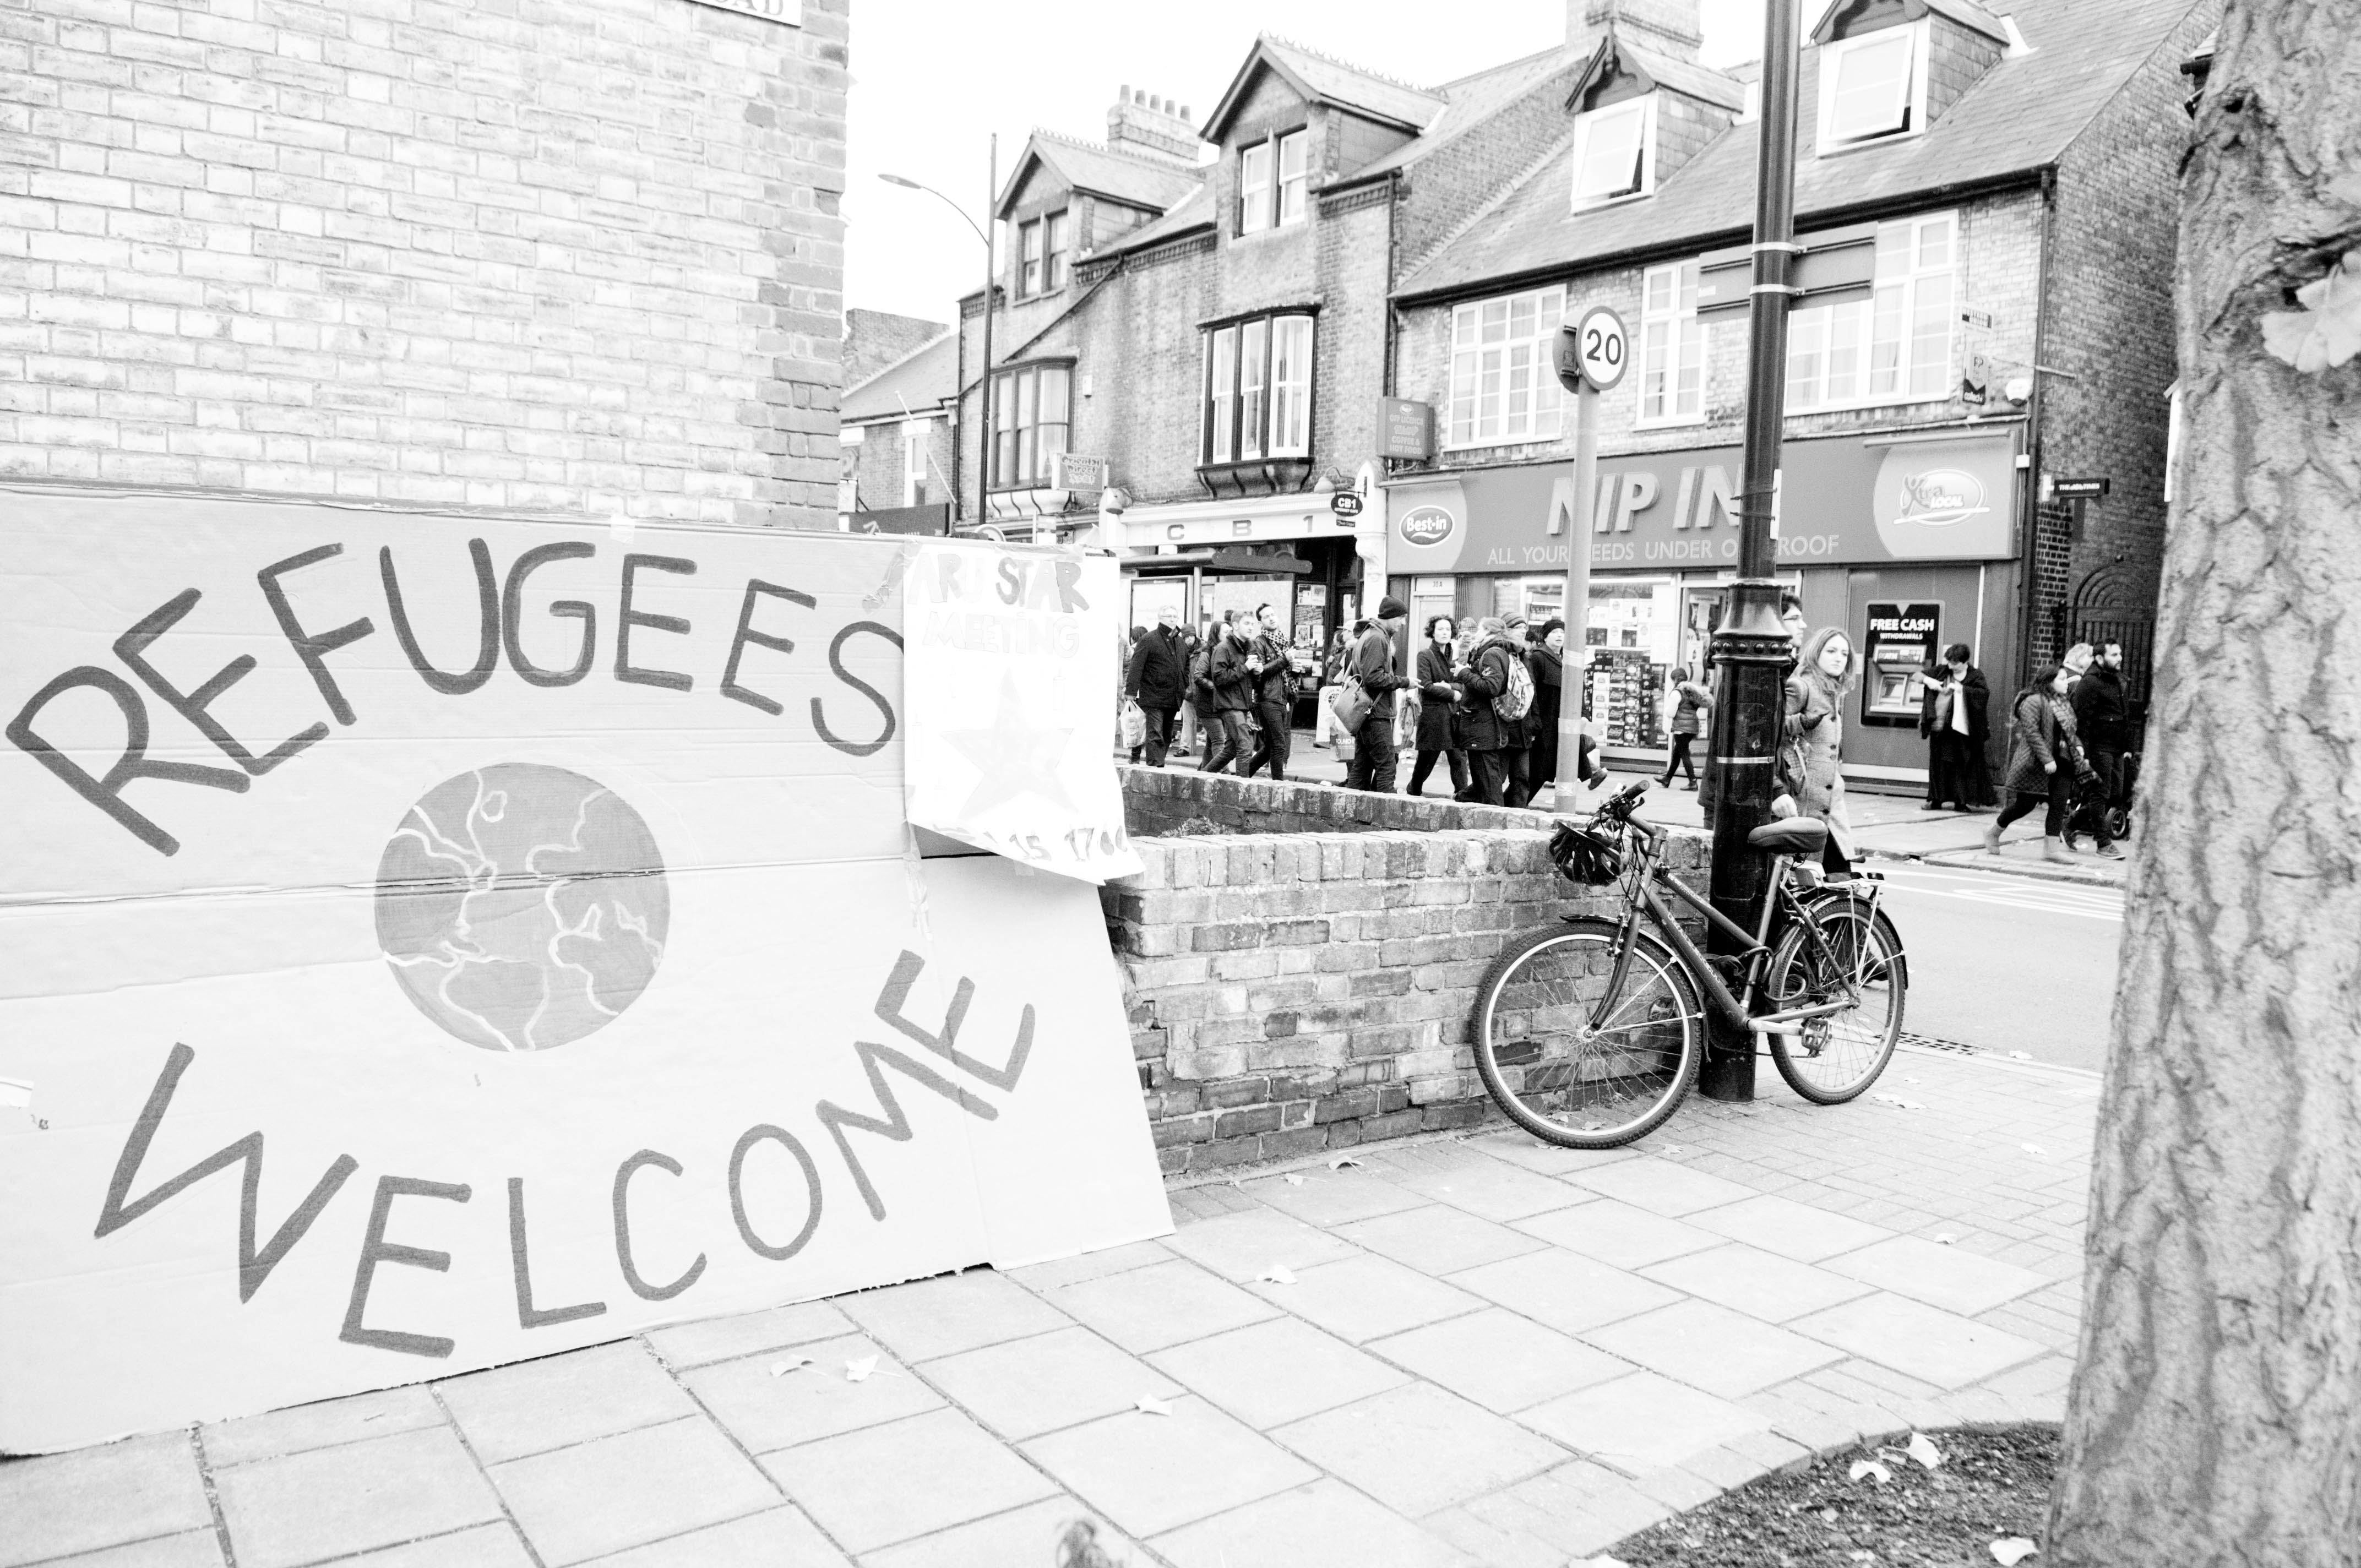 A march supporting refugees and asylum seekers in Cambridge